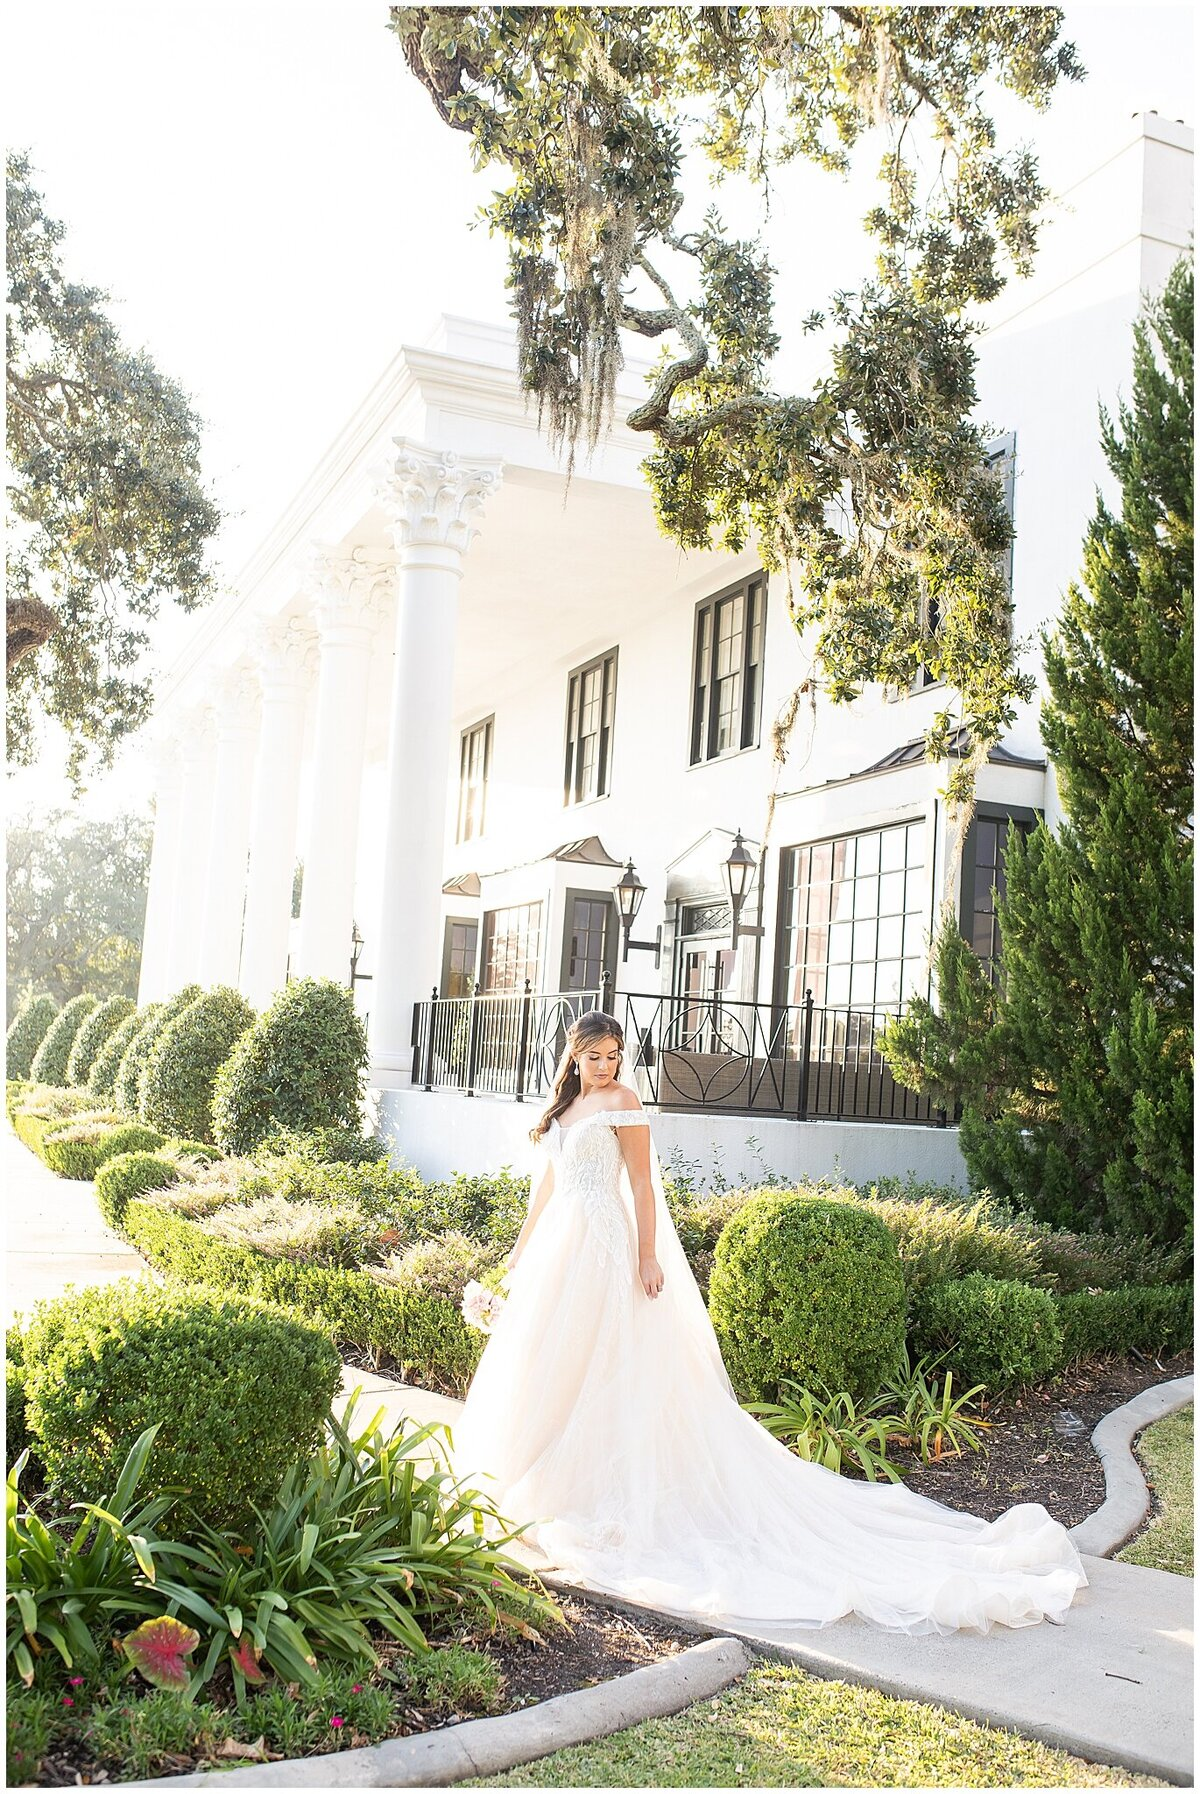 Bridal-Wedding-PortraitsThe-White-House-Hotel-Biloxi1235